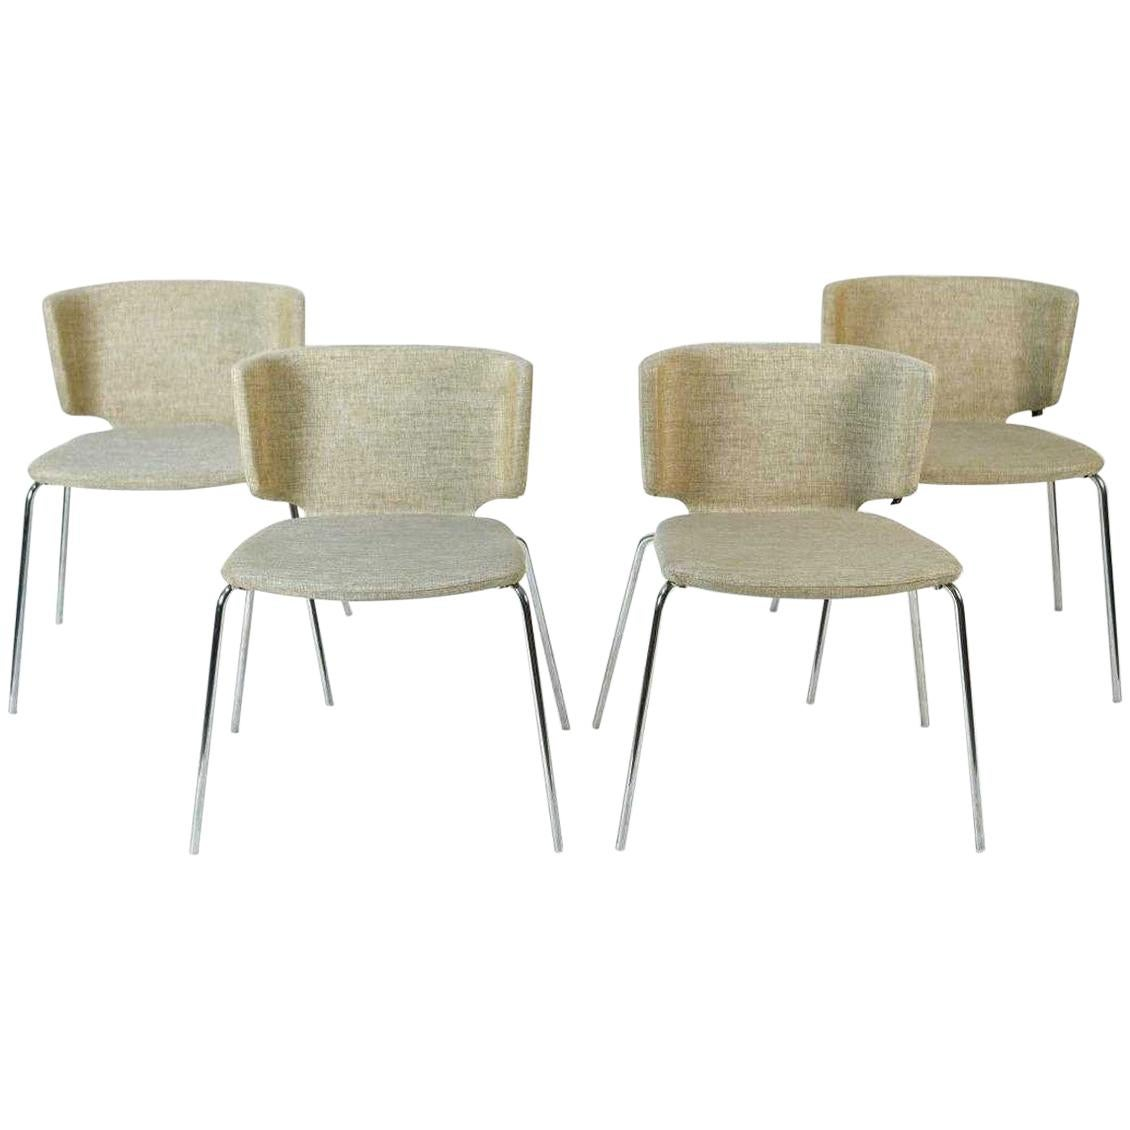 coalesse wrapp chair decorative legs four steelcase side chairs for sale at 1stdibs